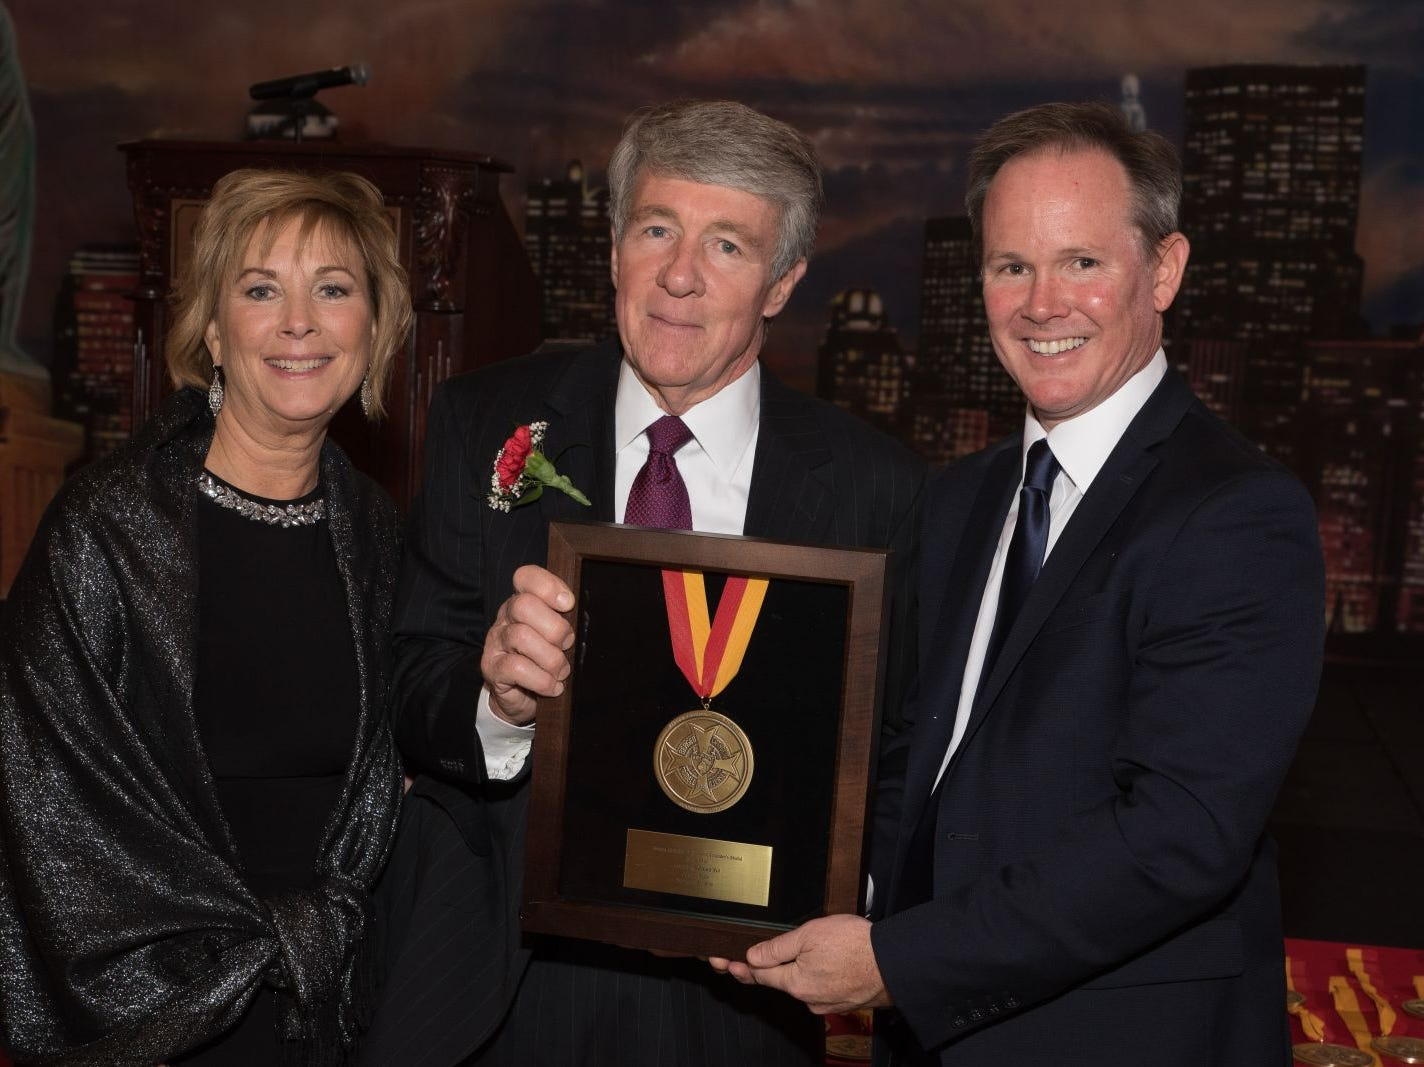 Marge Quinn, Joseph P. Donlan (honoree) and Dr. Brian Mahoney (President of Bergen Catholic High School).Bergen Catholic High School celebrates their 2018 Crusader Gala at The Venetian in Garfield. 11/16/2018